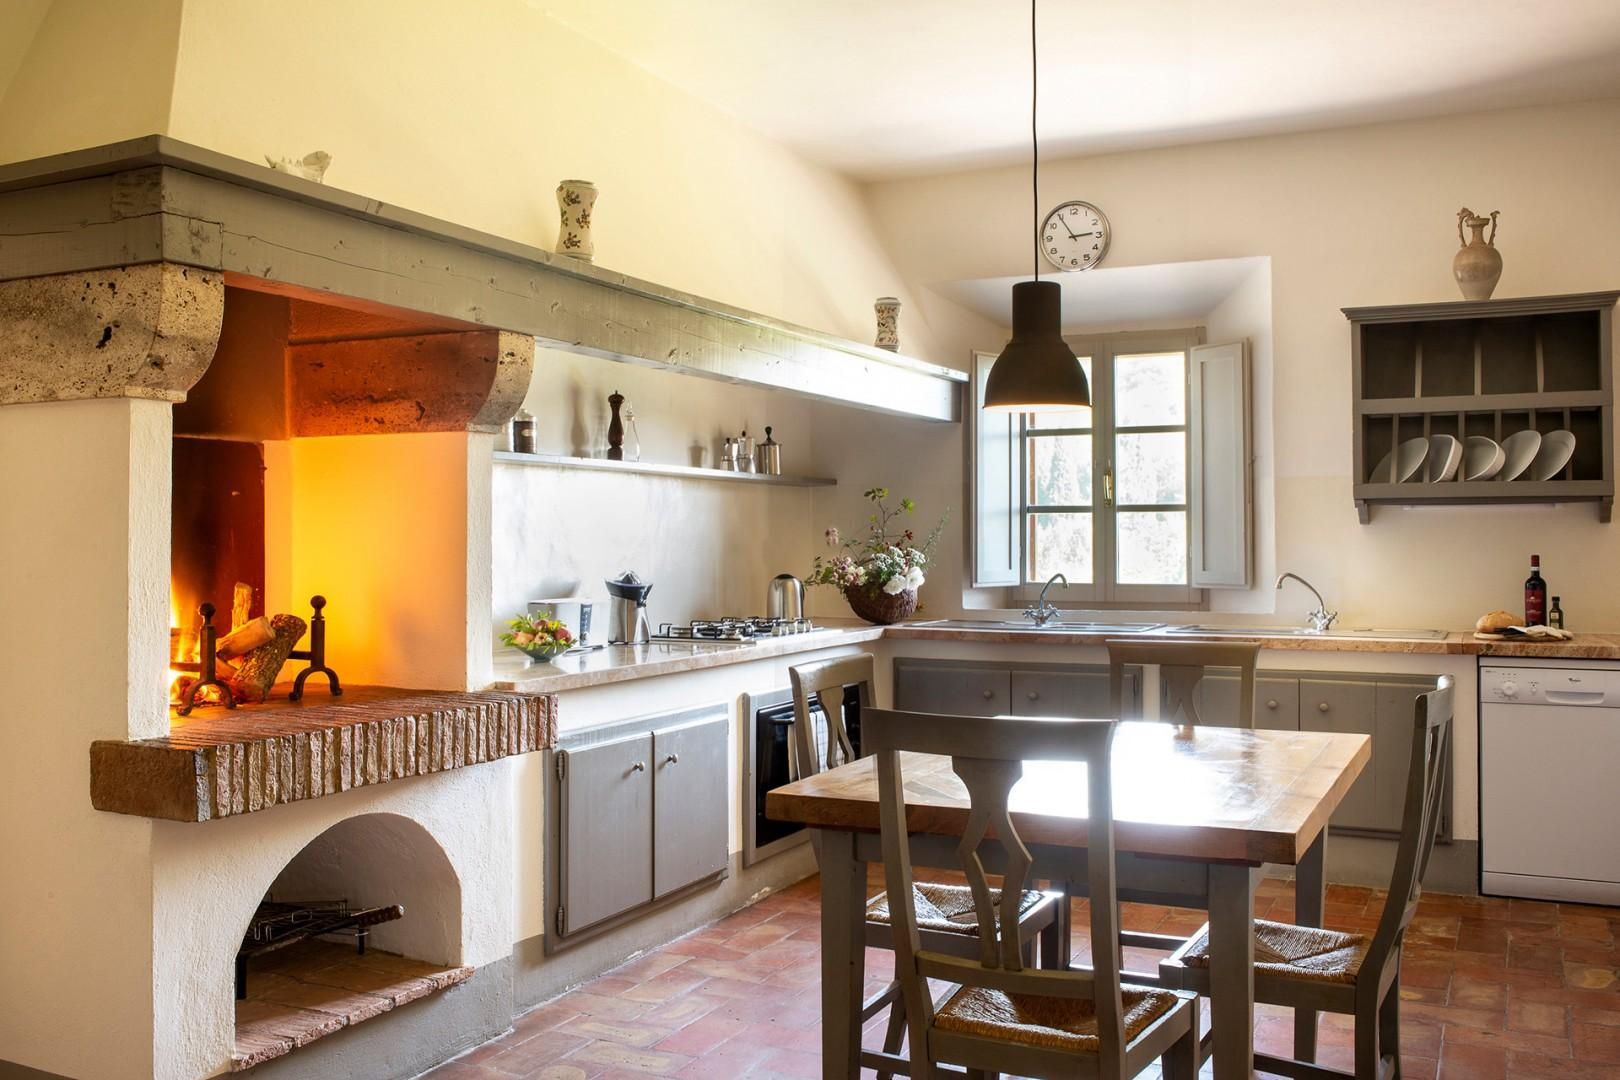 The large kitchen has room for a table for preparation or casual dining.